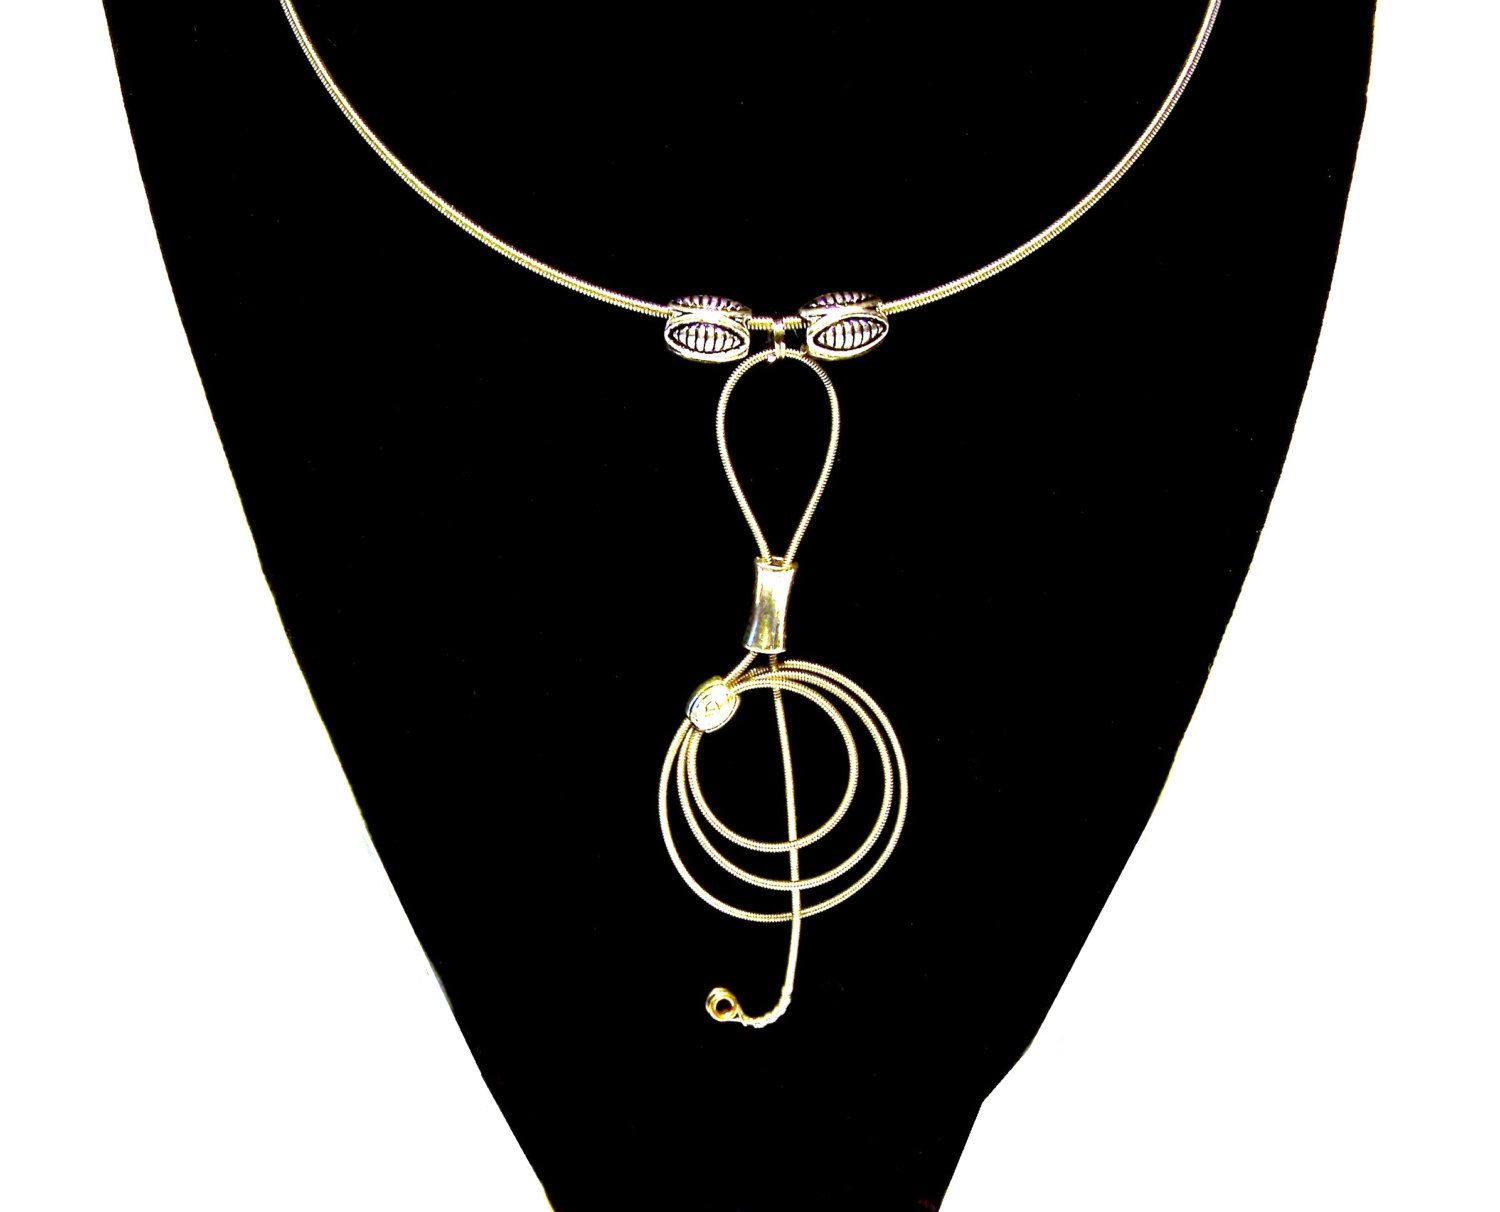 Recycled guitar string jewelry - Recycled Guitar String Treble Clef Choker 32 00 Via Etsy